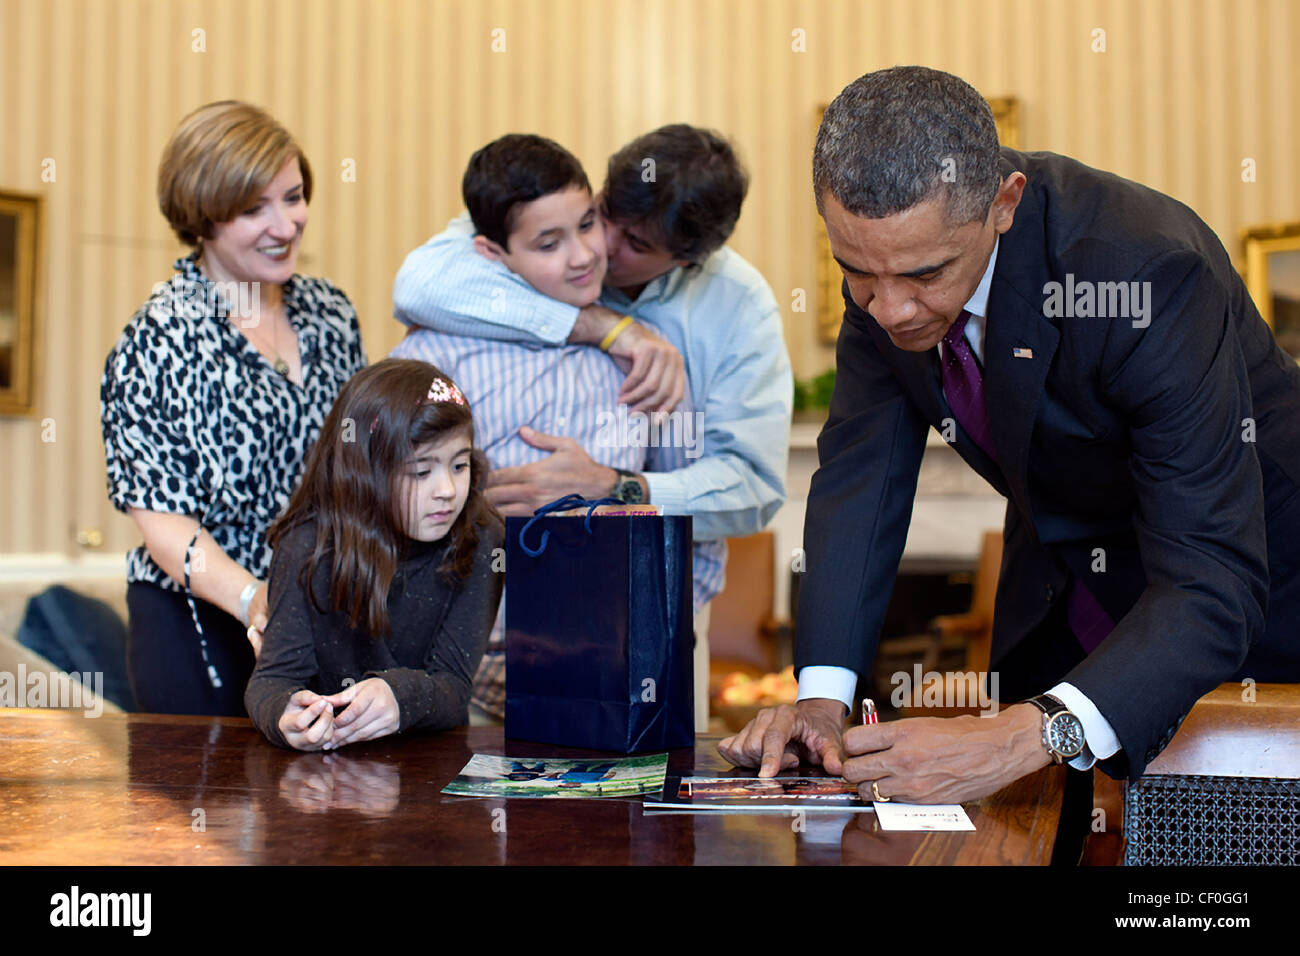 President Barack Obama signs items for Make-A-Wish child Rafael Mullet during a visit in the Oval Office January - Stock Image